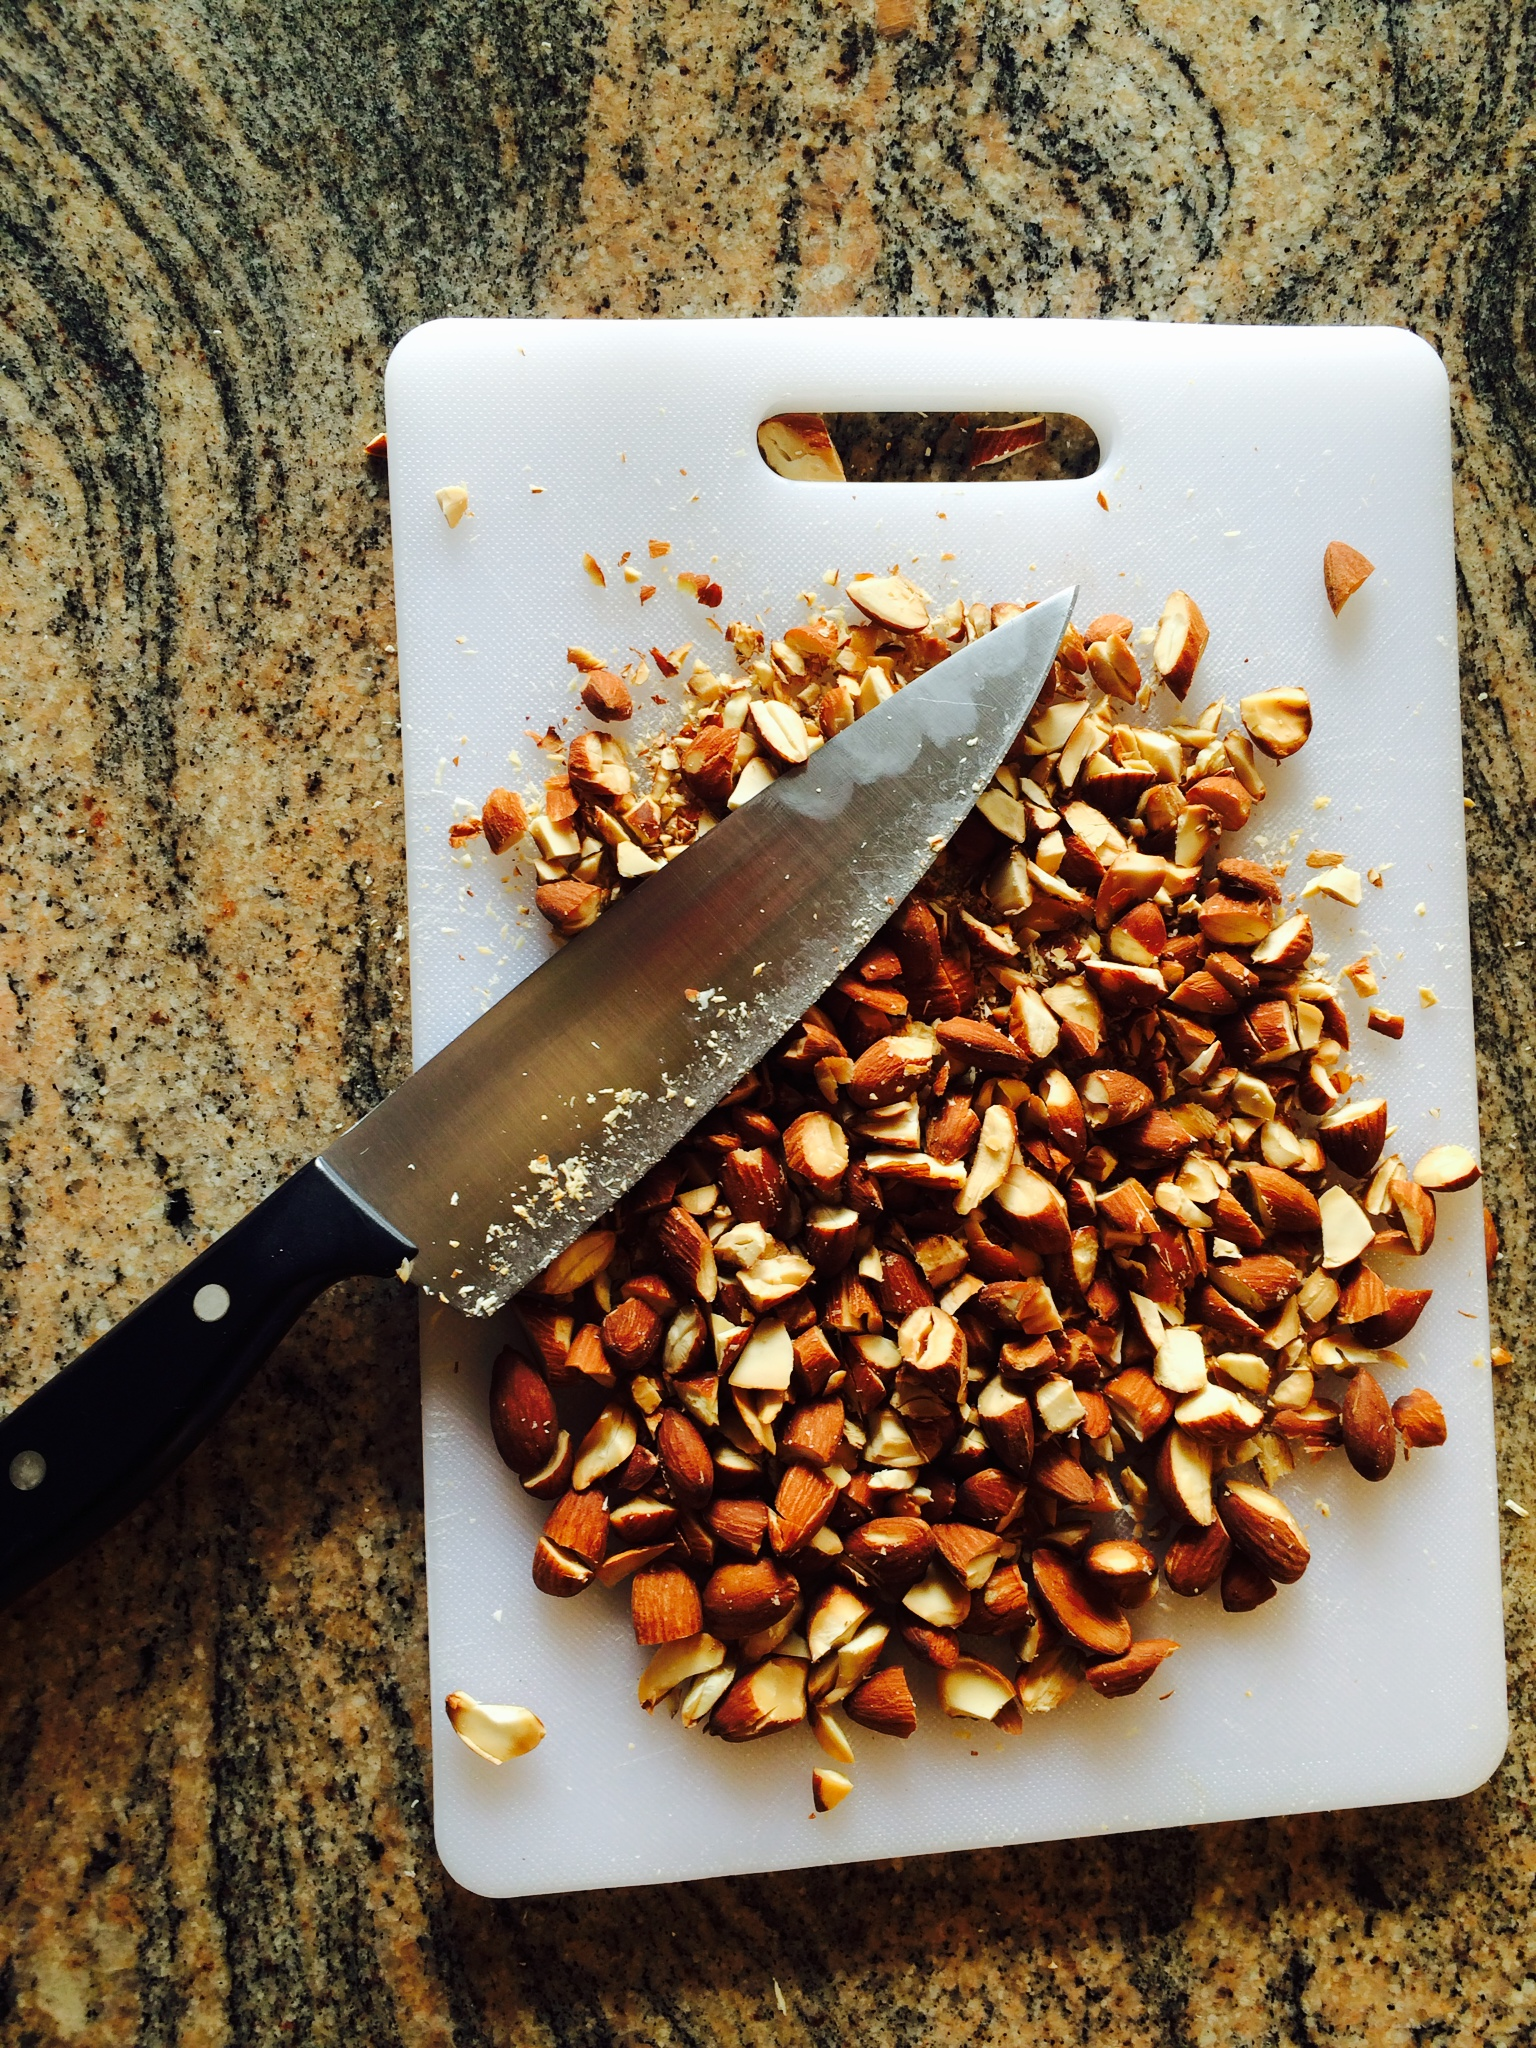 Energy bar recipe recipe ingredients almonds asweatlife fabfitchicago